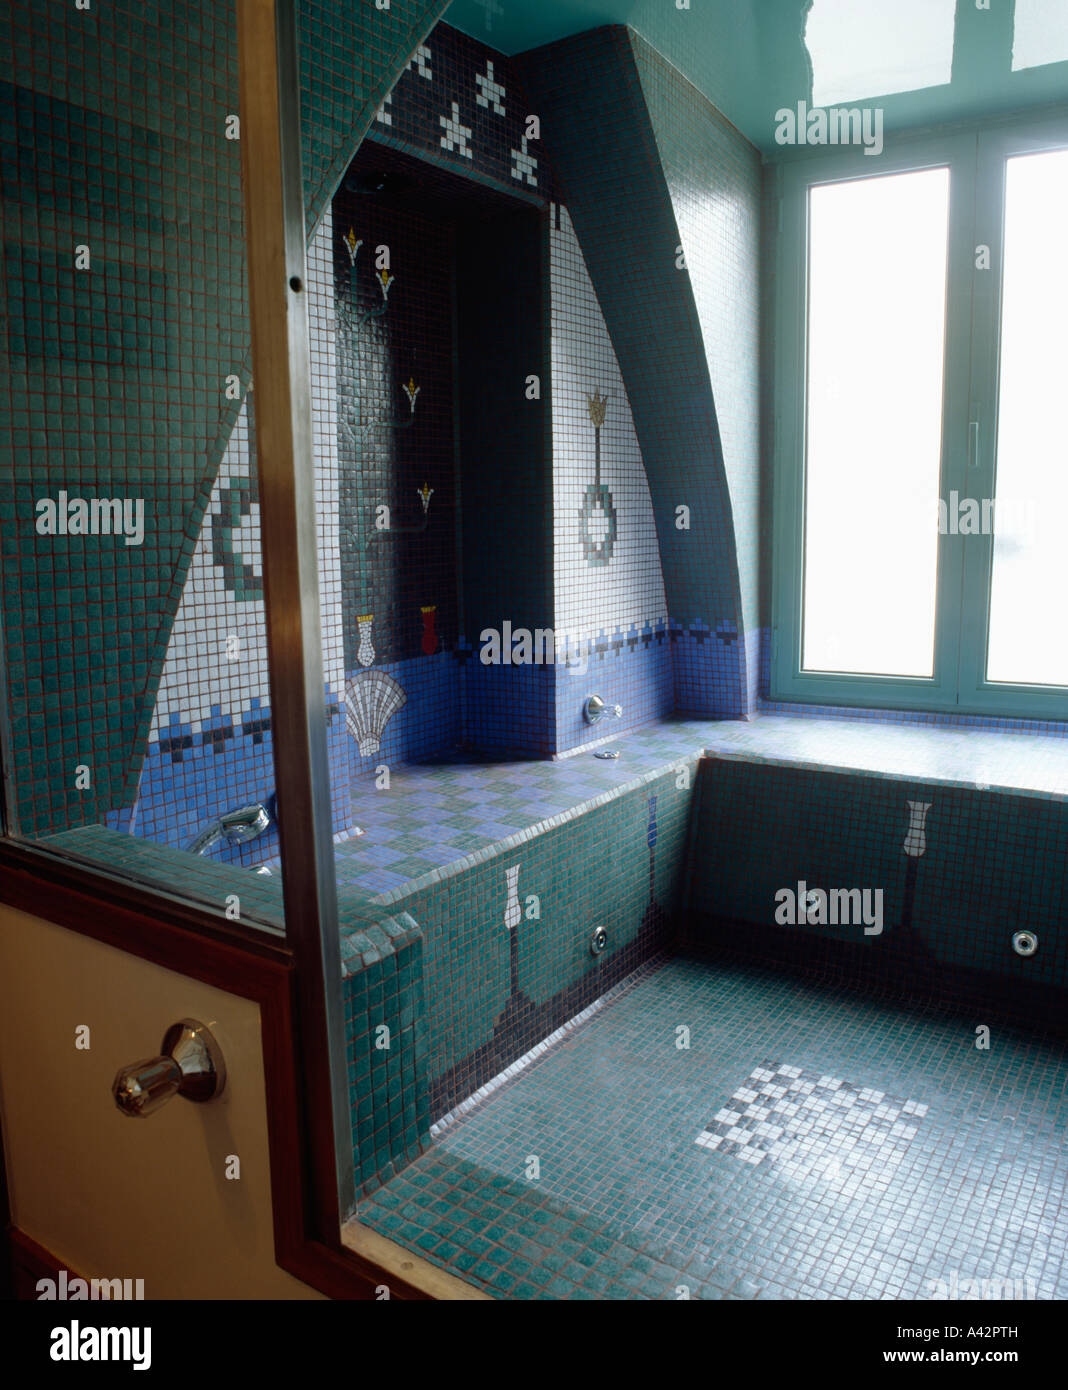 Green tiled sunken bath in blue and green bathroom Stock Photo ...